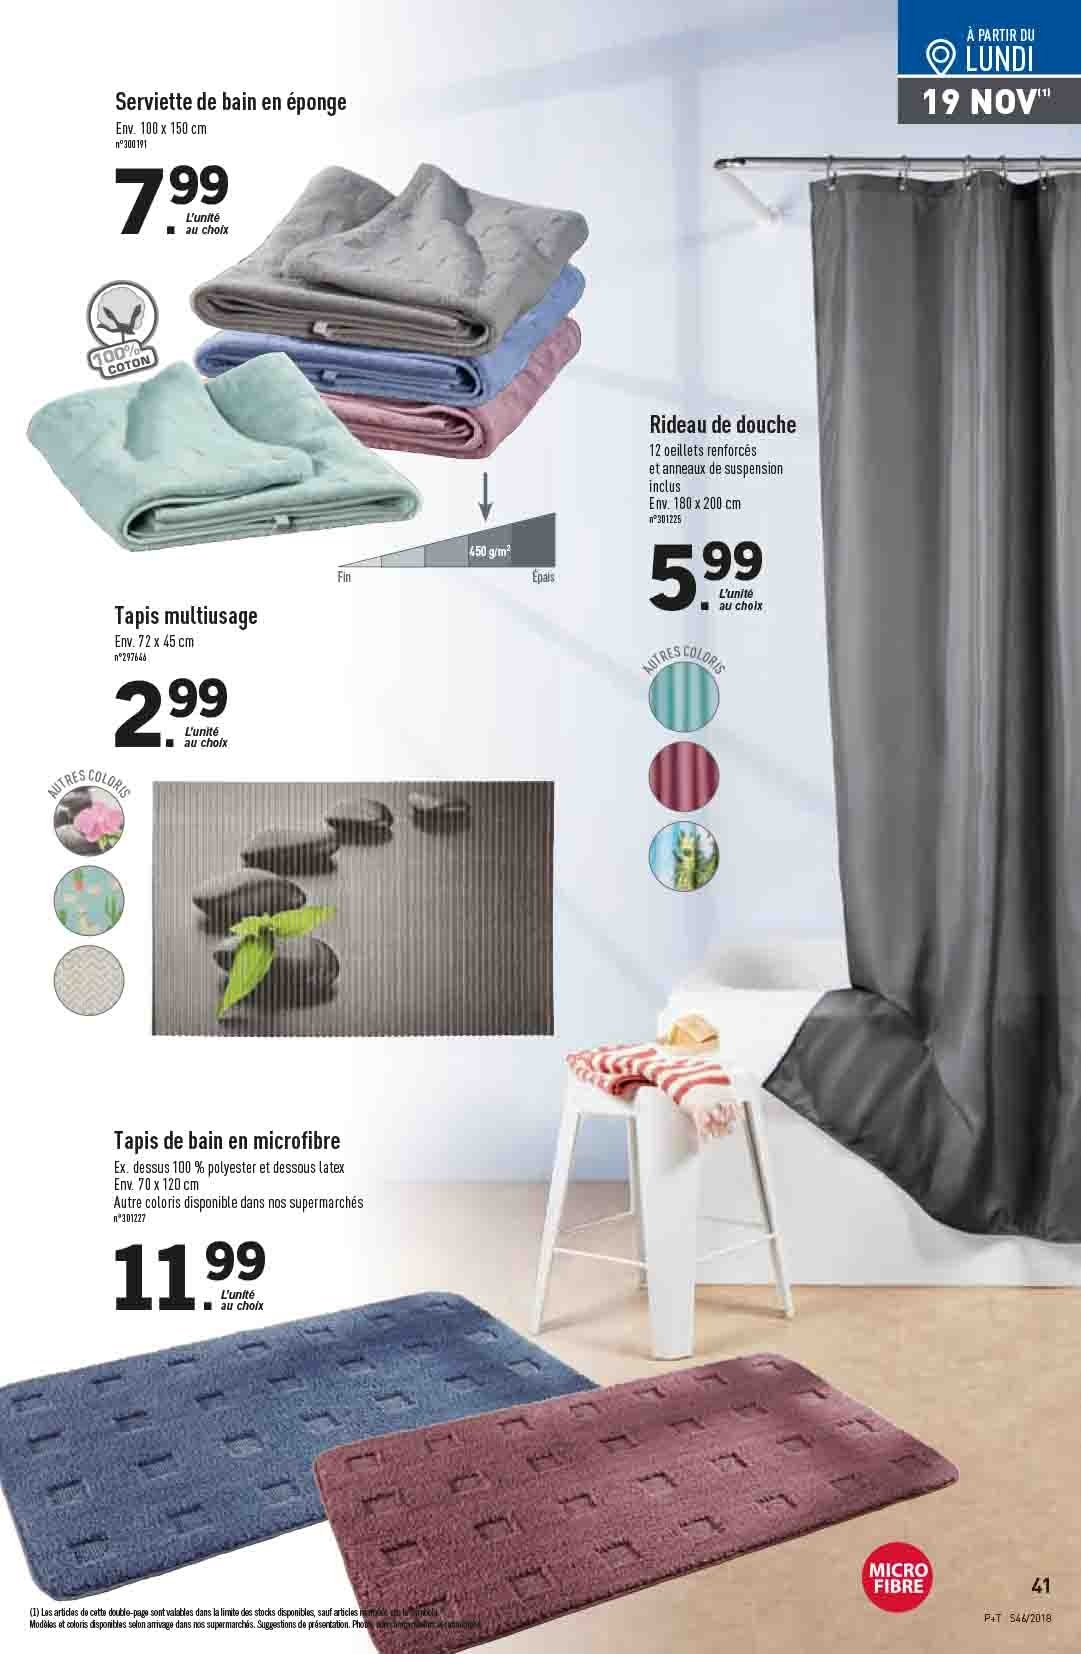 Catalogue Lidl - 14.11.2018 - 20.11.2018. Page 41.